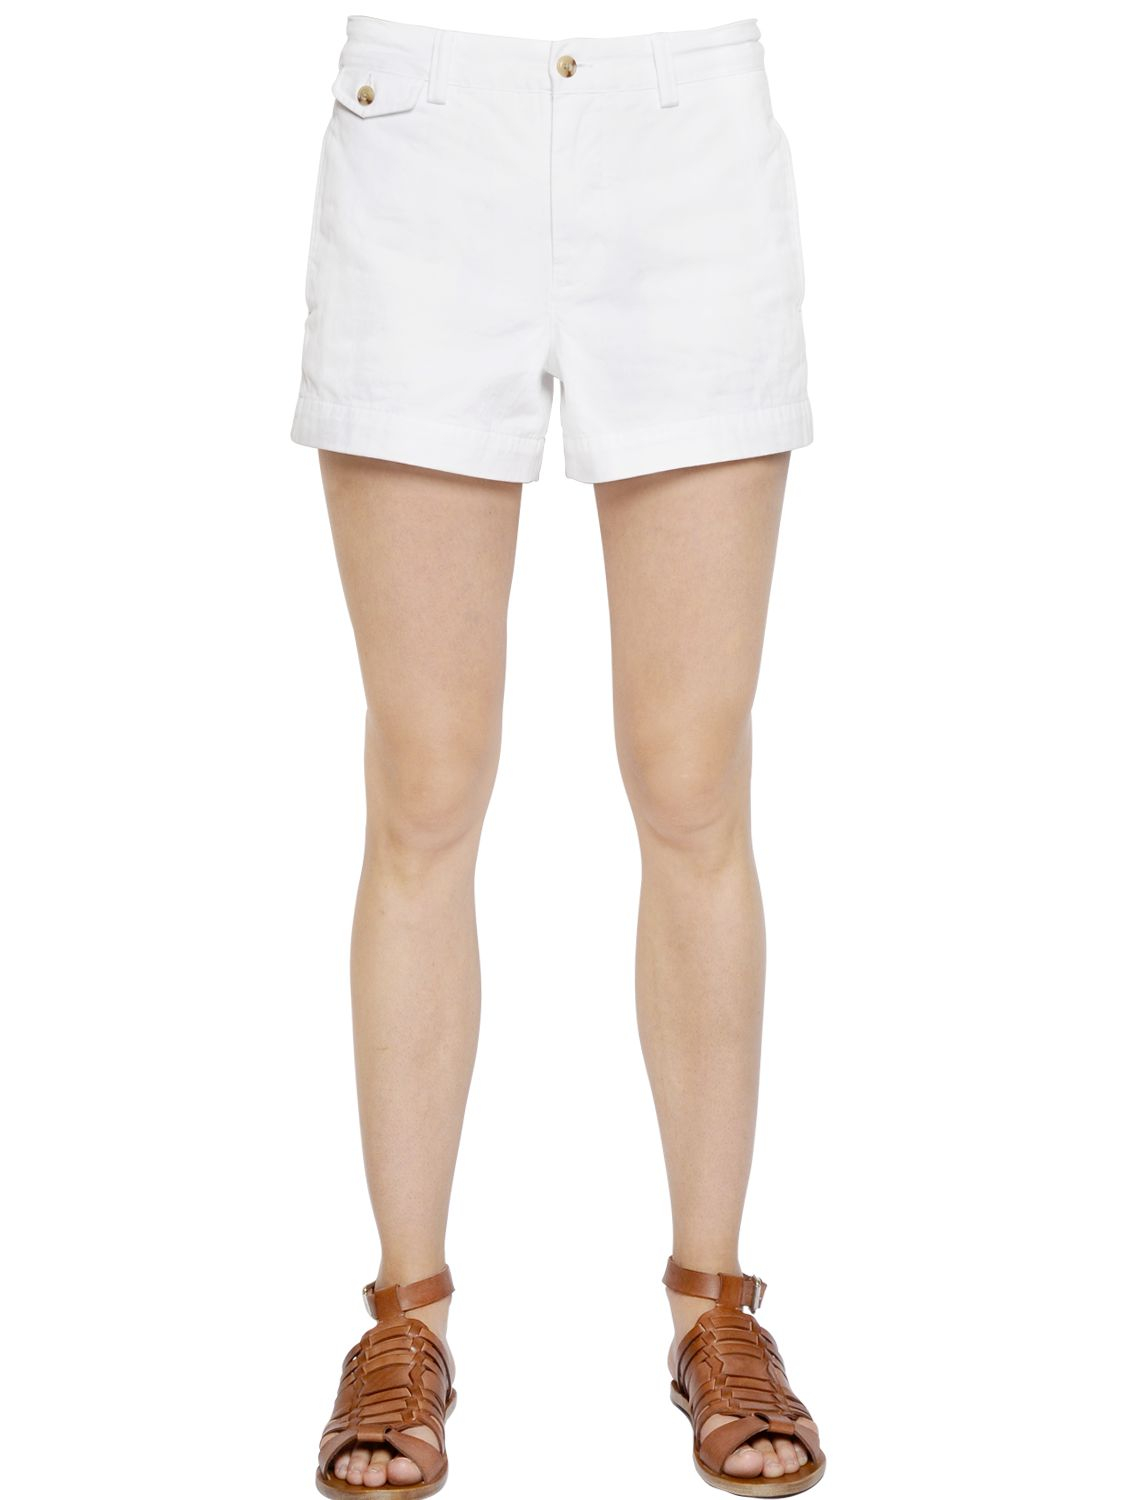 Lyst - Polo Ralph Lauren Cotton Chino Shorts in White 9d08cb339